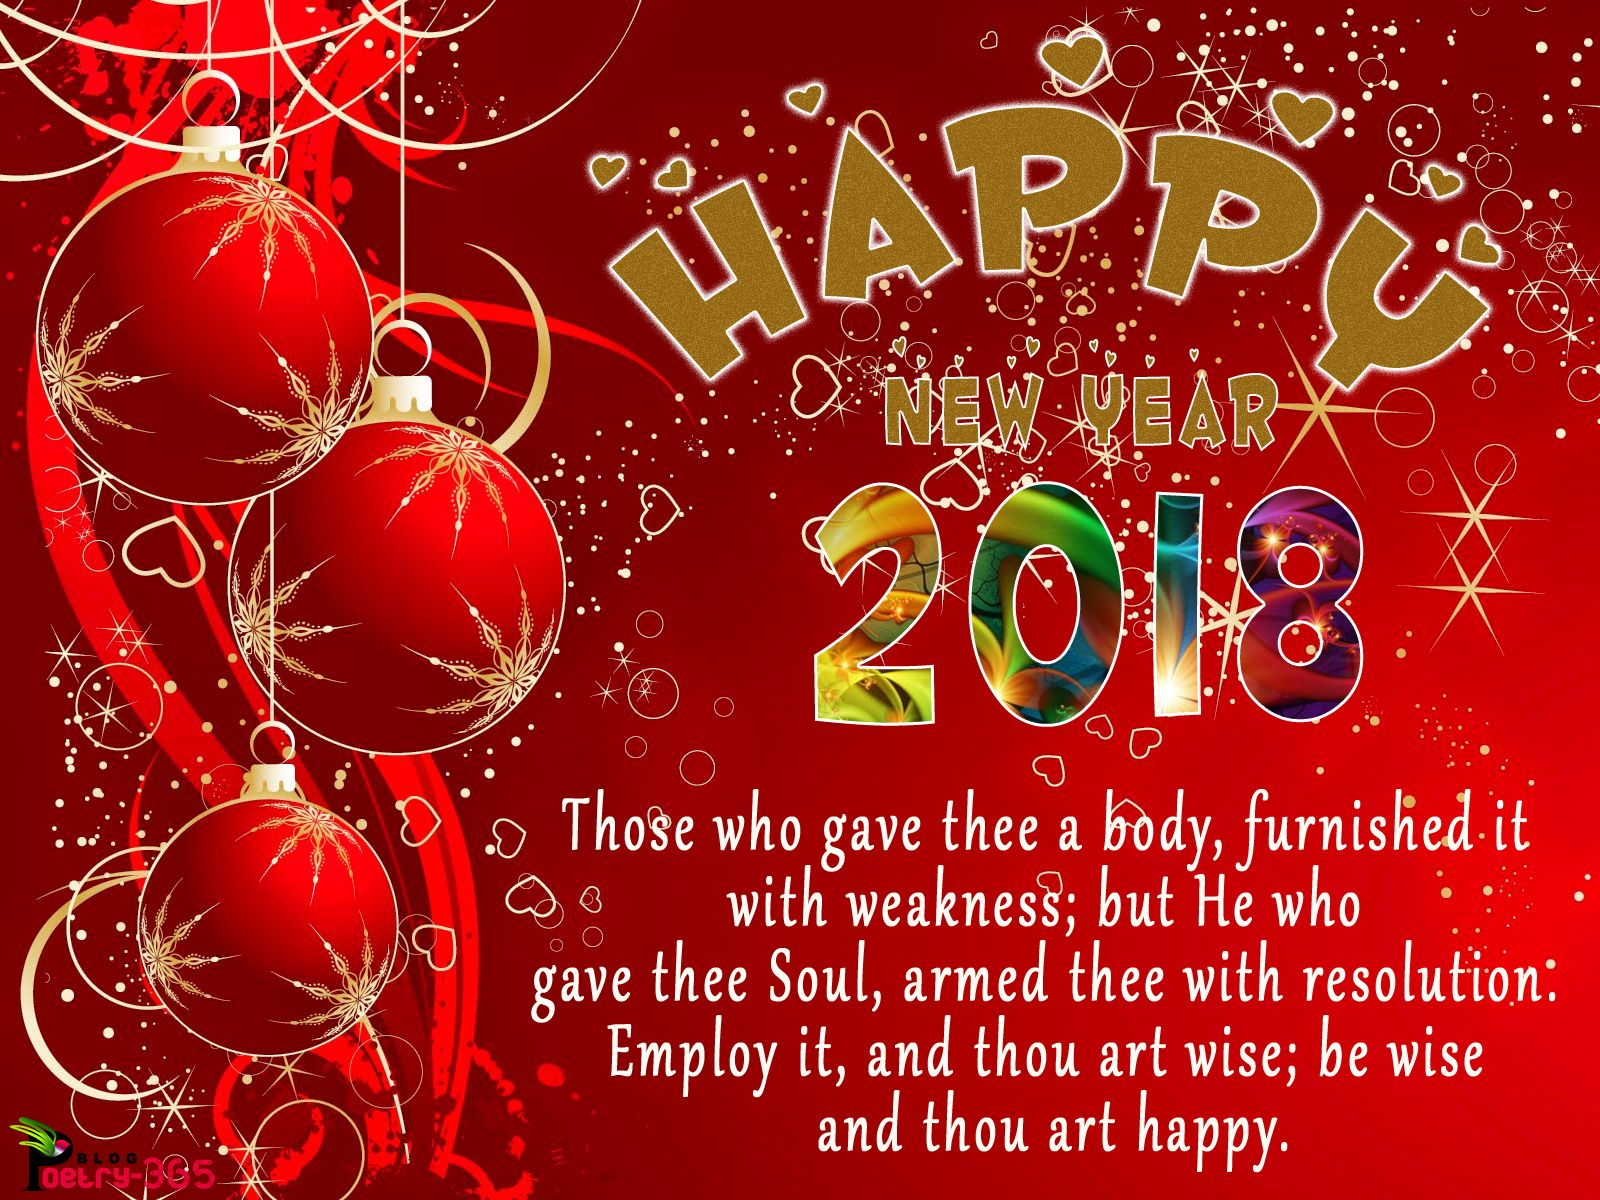 There Are Happy New Year Images In This Post These Image New Year